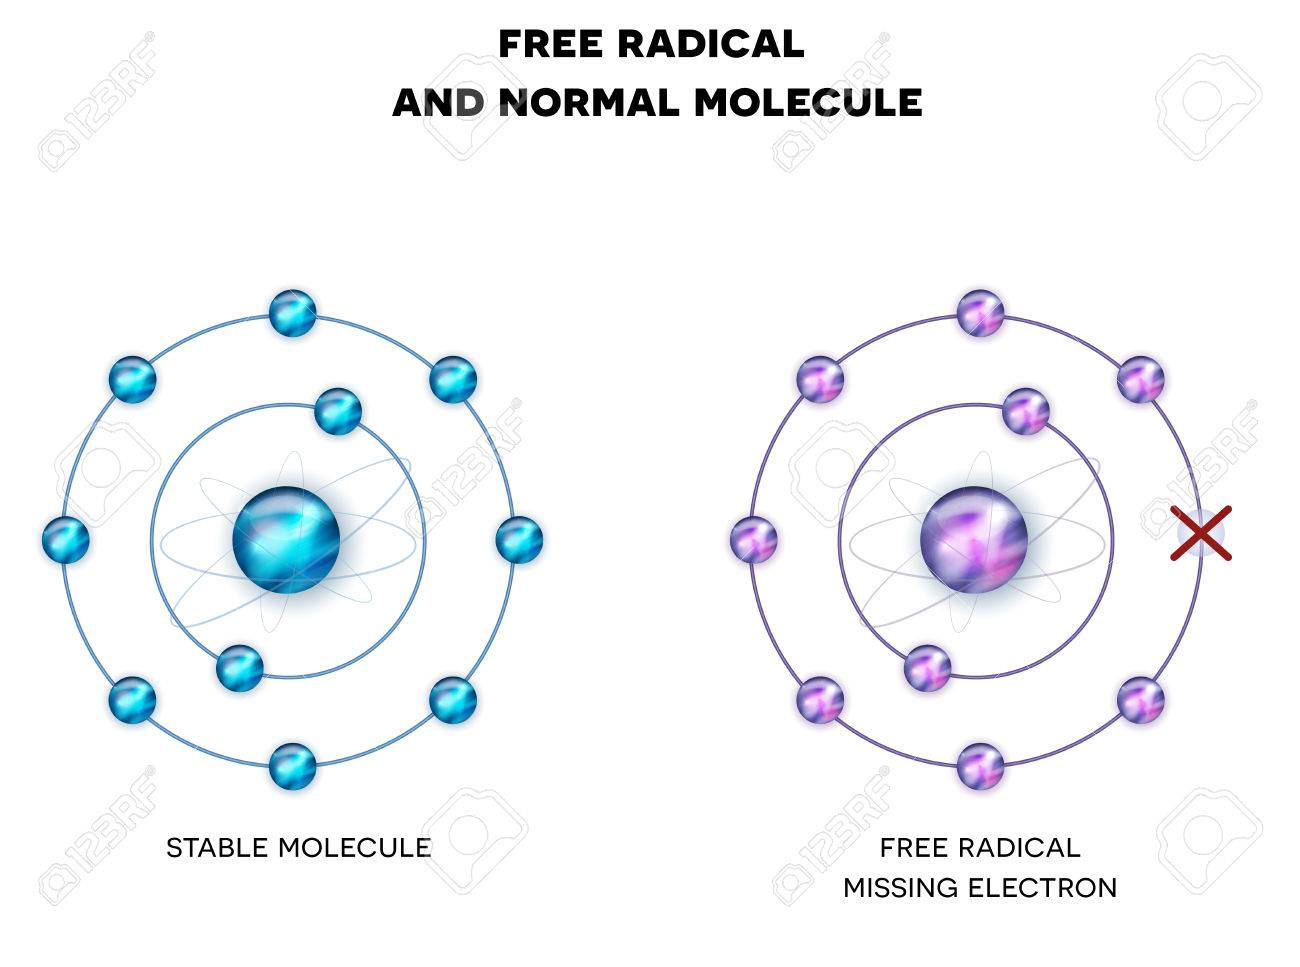 Free radical with missing electron, unpaired electron and stable, normal molecule. - 67396216